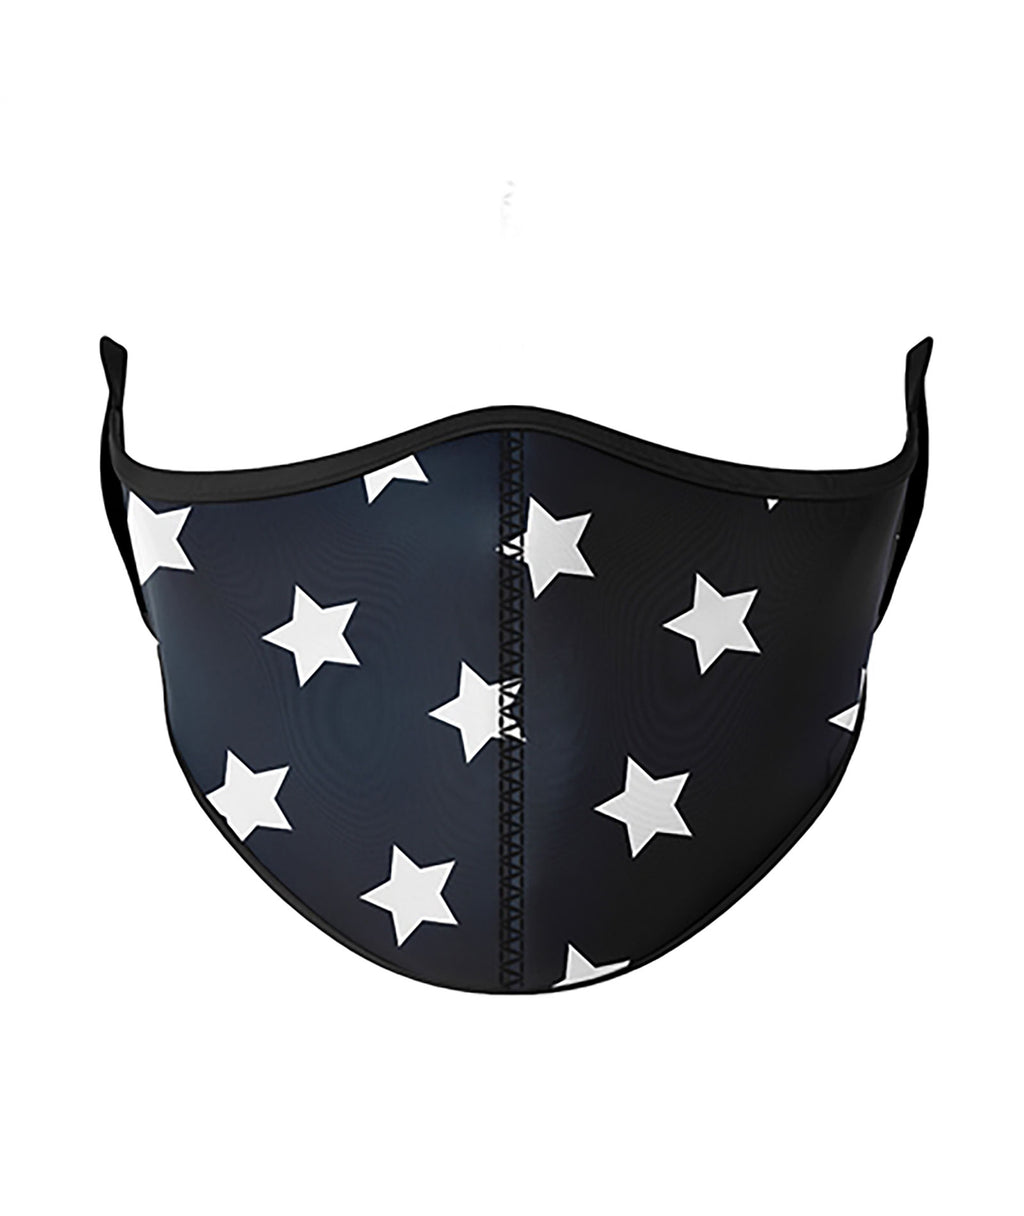 Top Trenz Black and White Star One Size Ages 8+ Face Mask